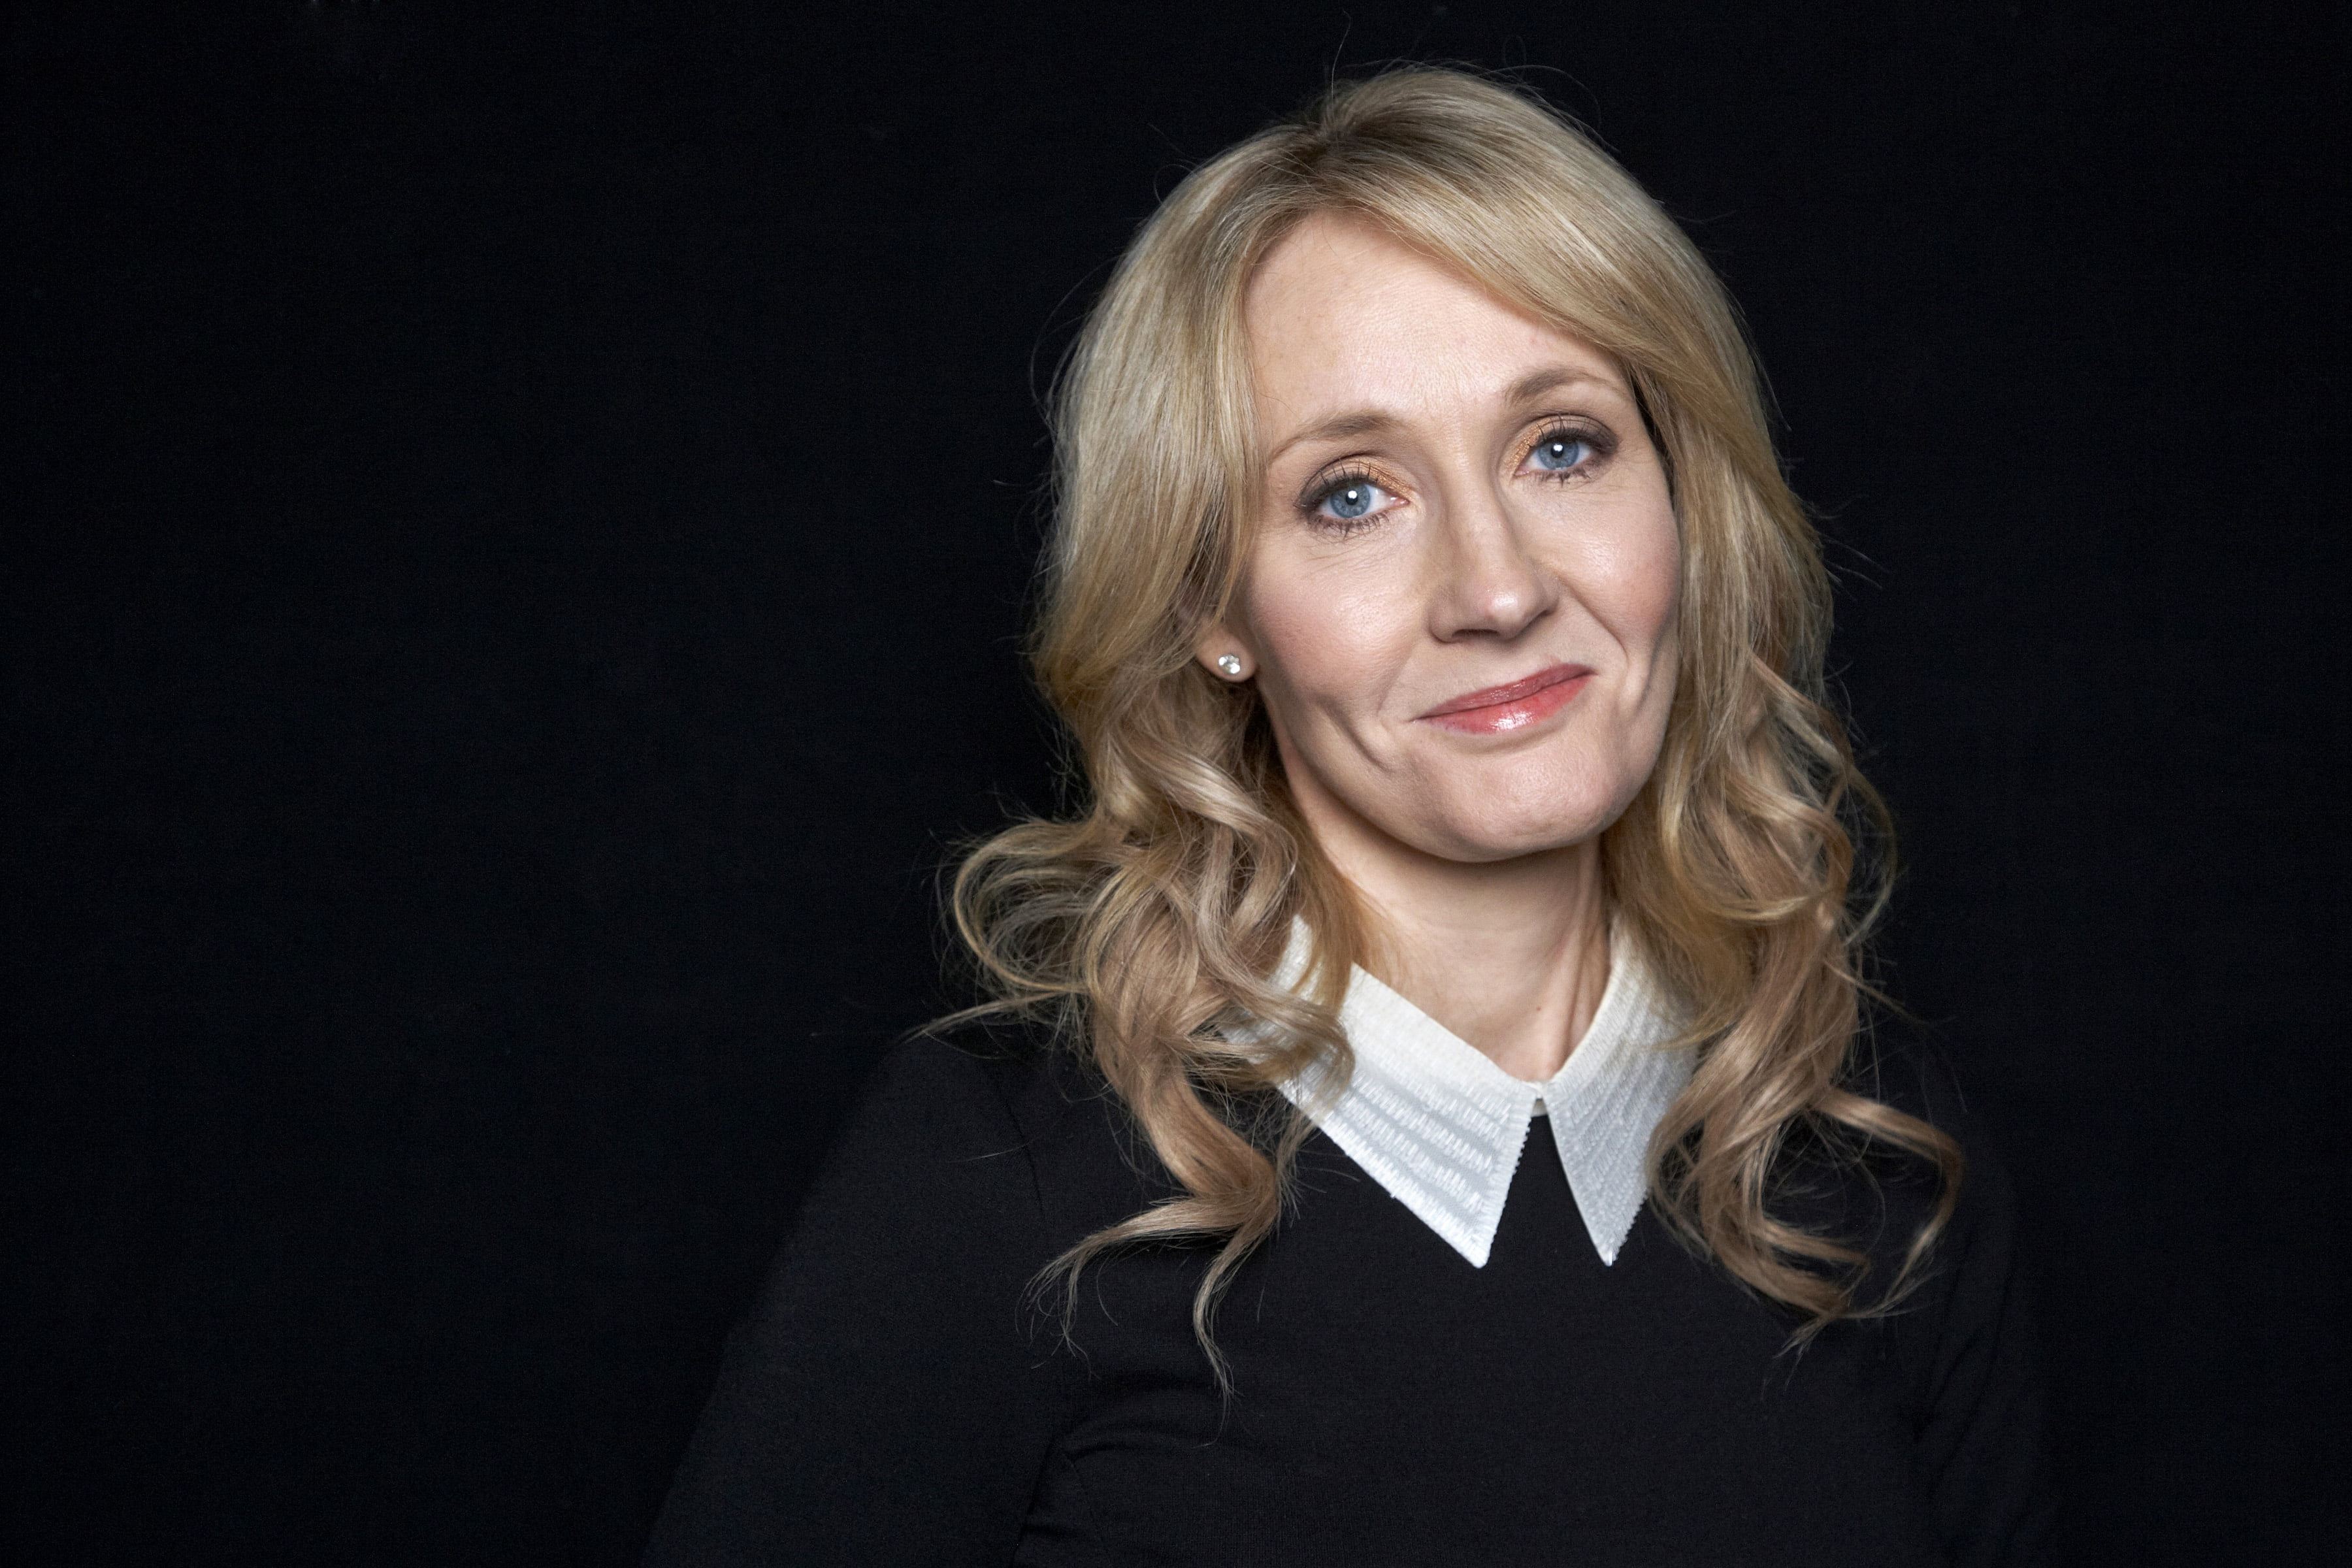 A year ago, J. K. Rowling was wealthier than the Queen of England.